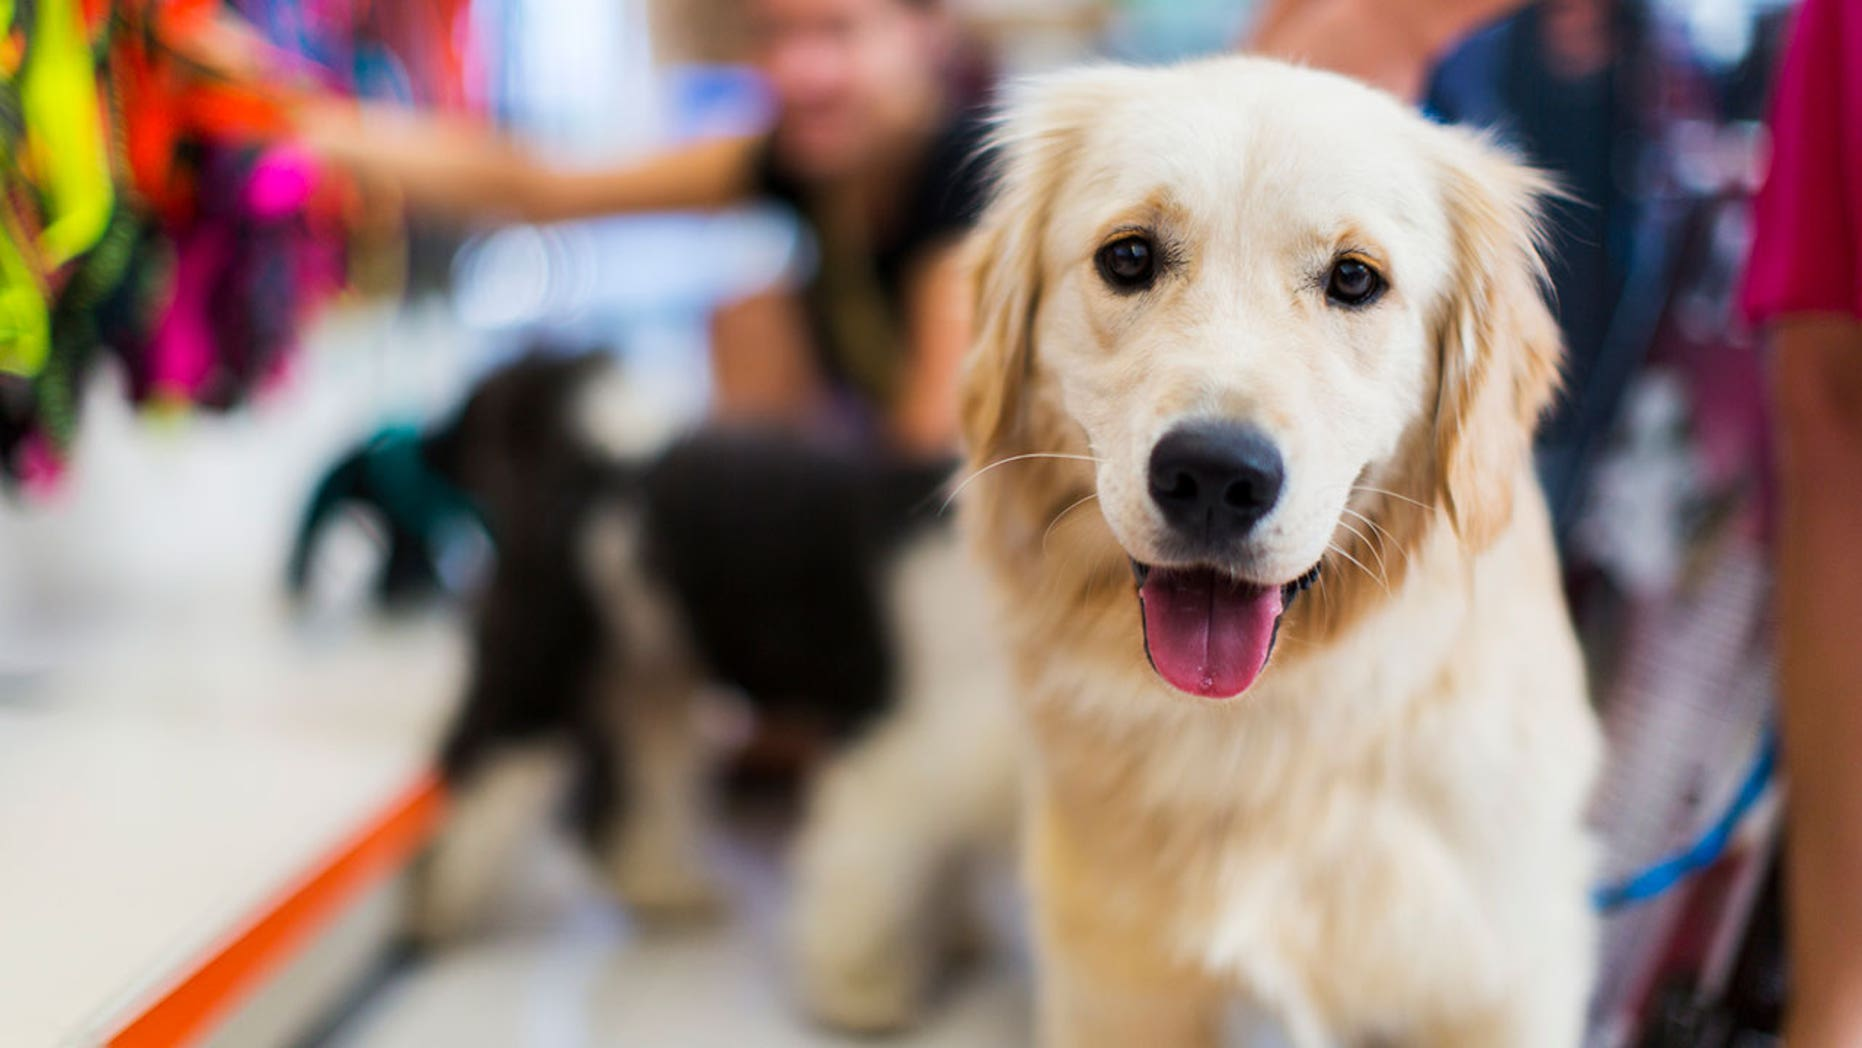 California will soon require pet stores to change their practices.